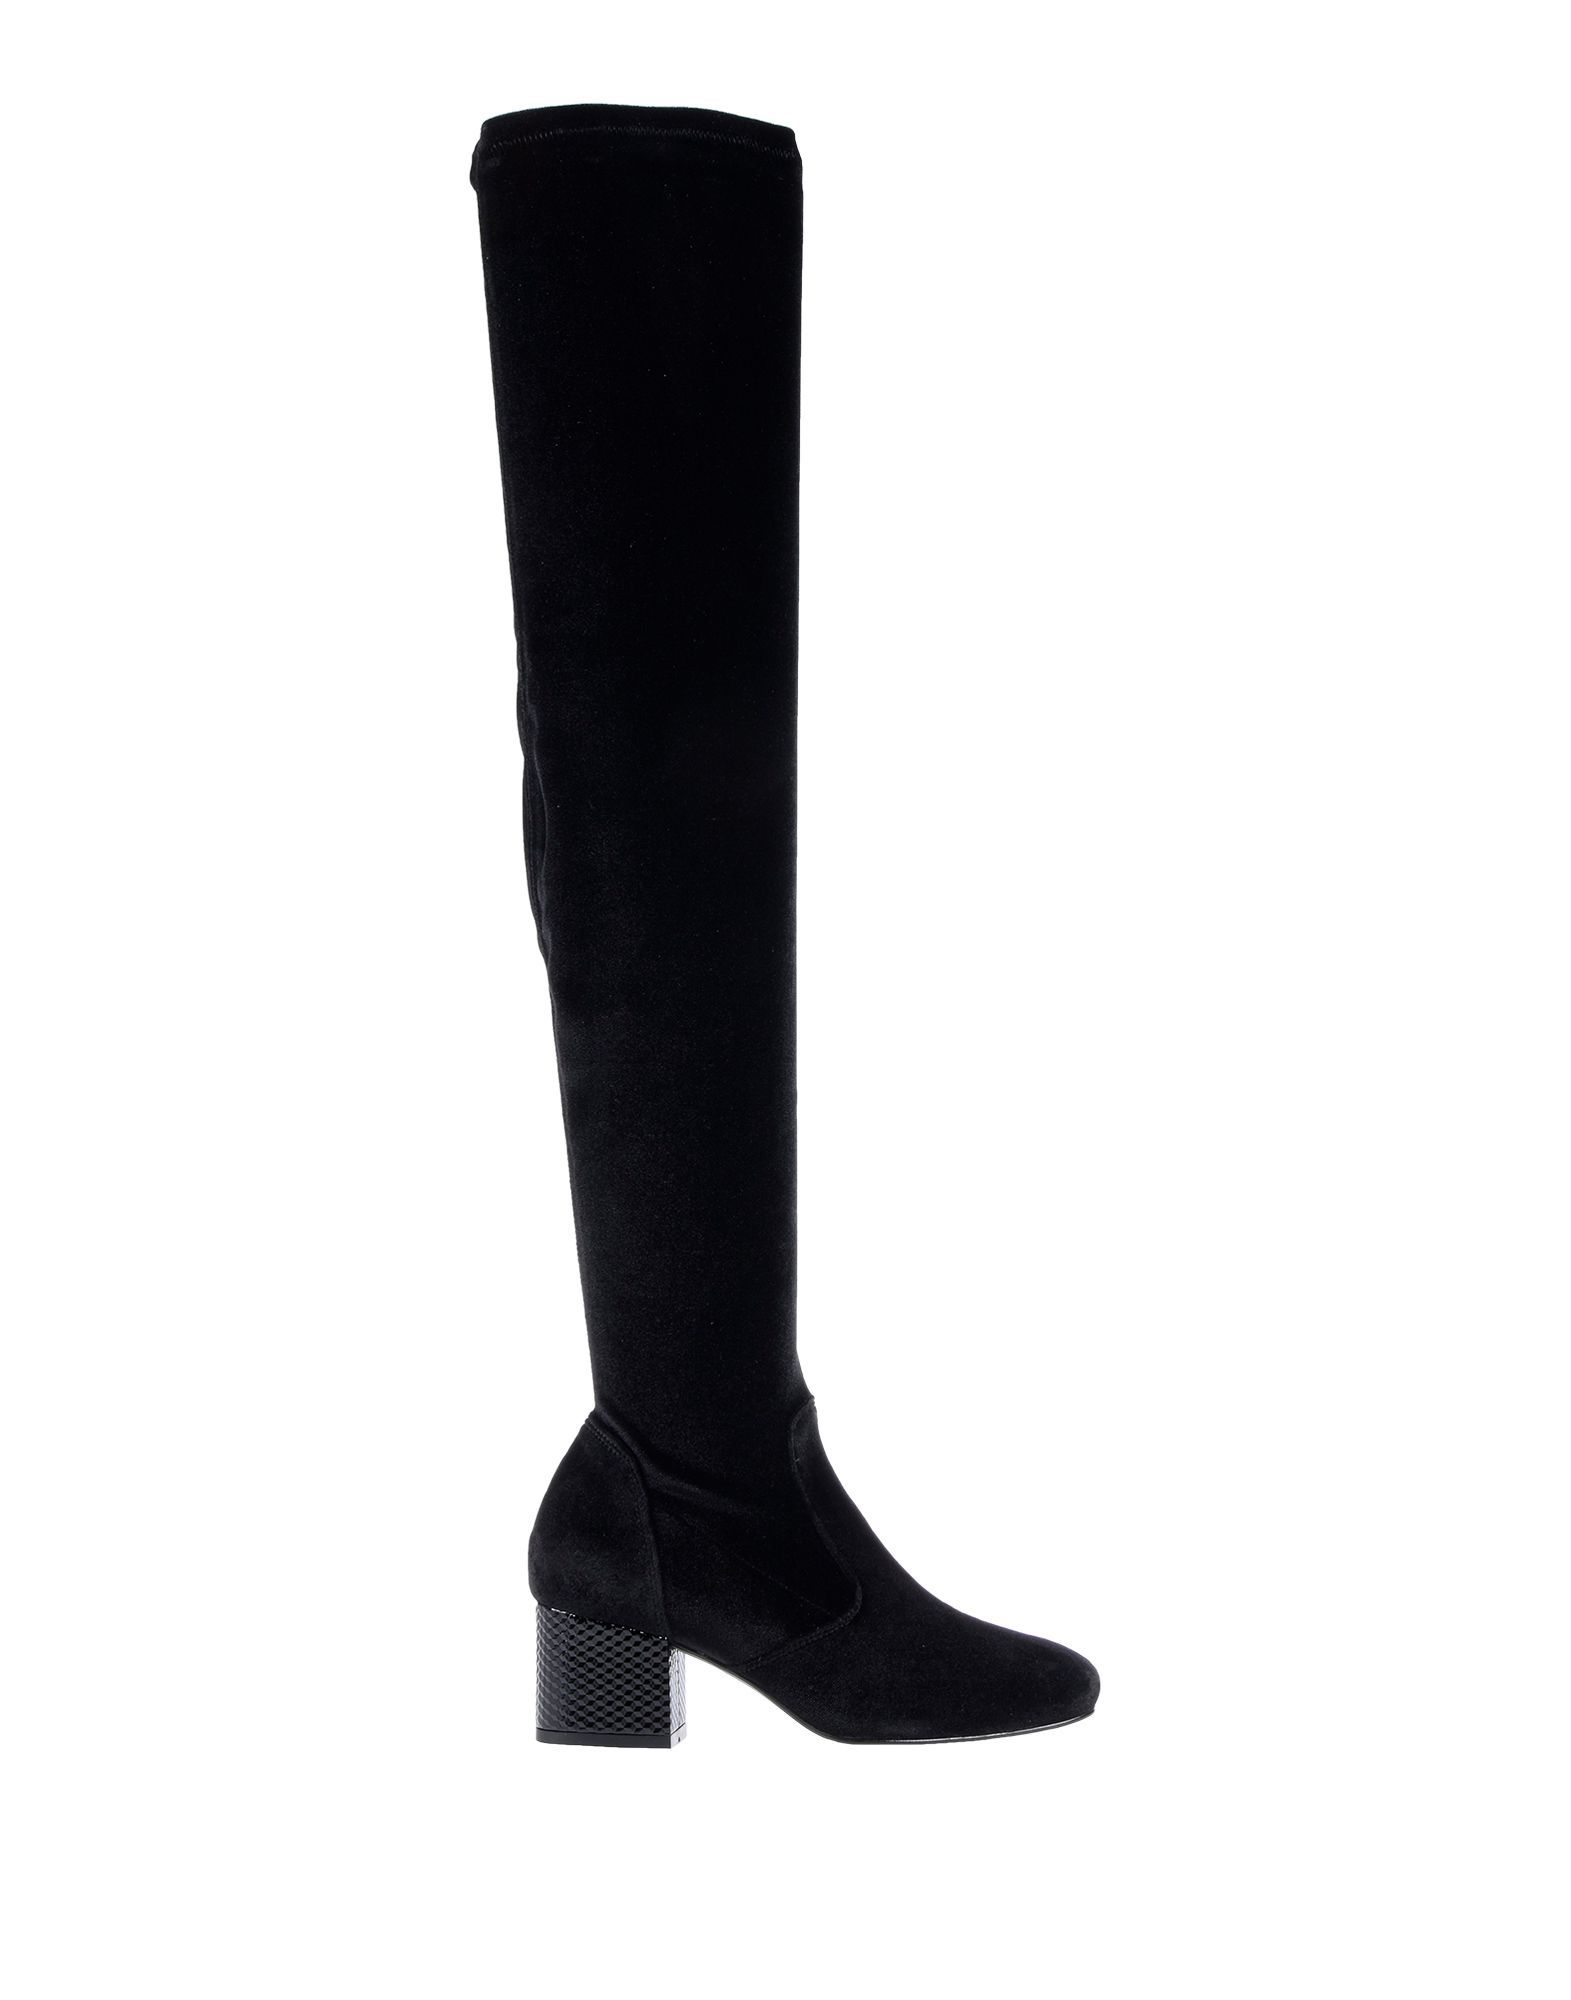 Pollini Black Chenille Over The Knee Boots